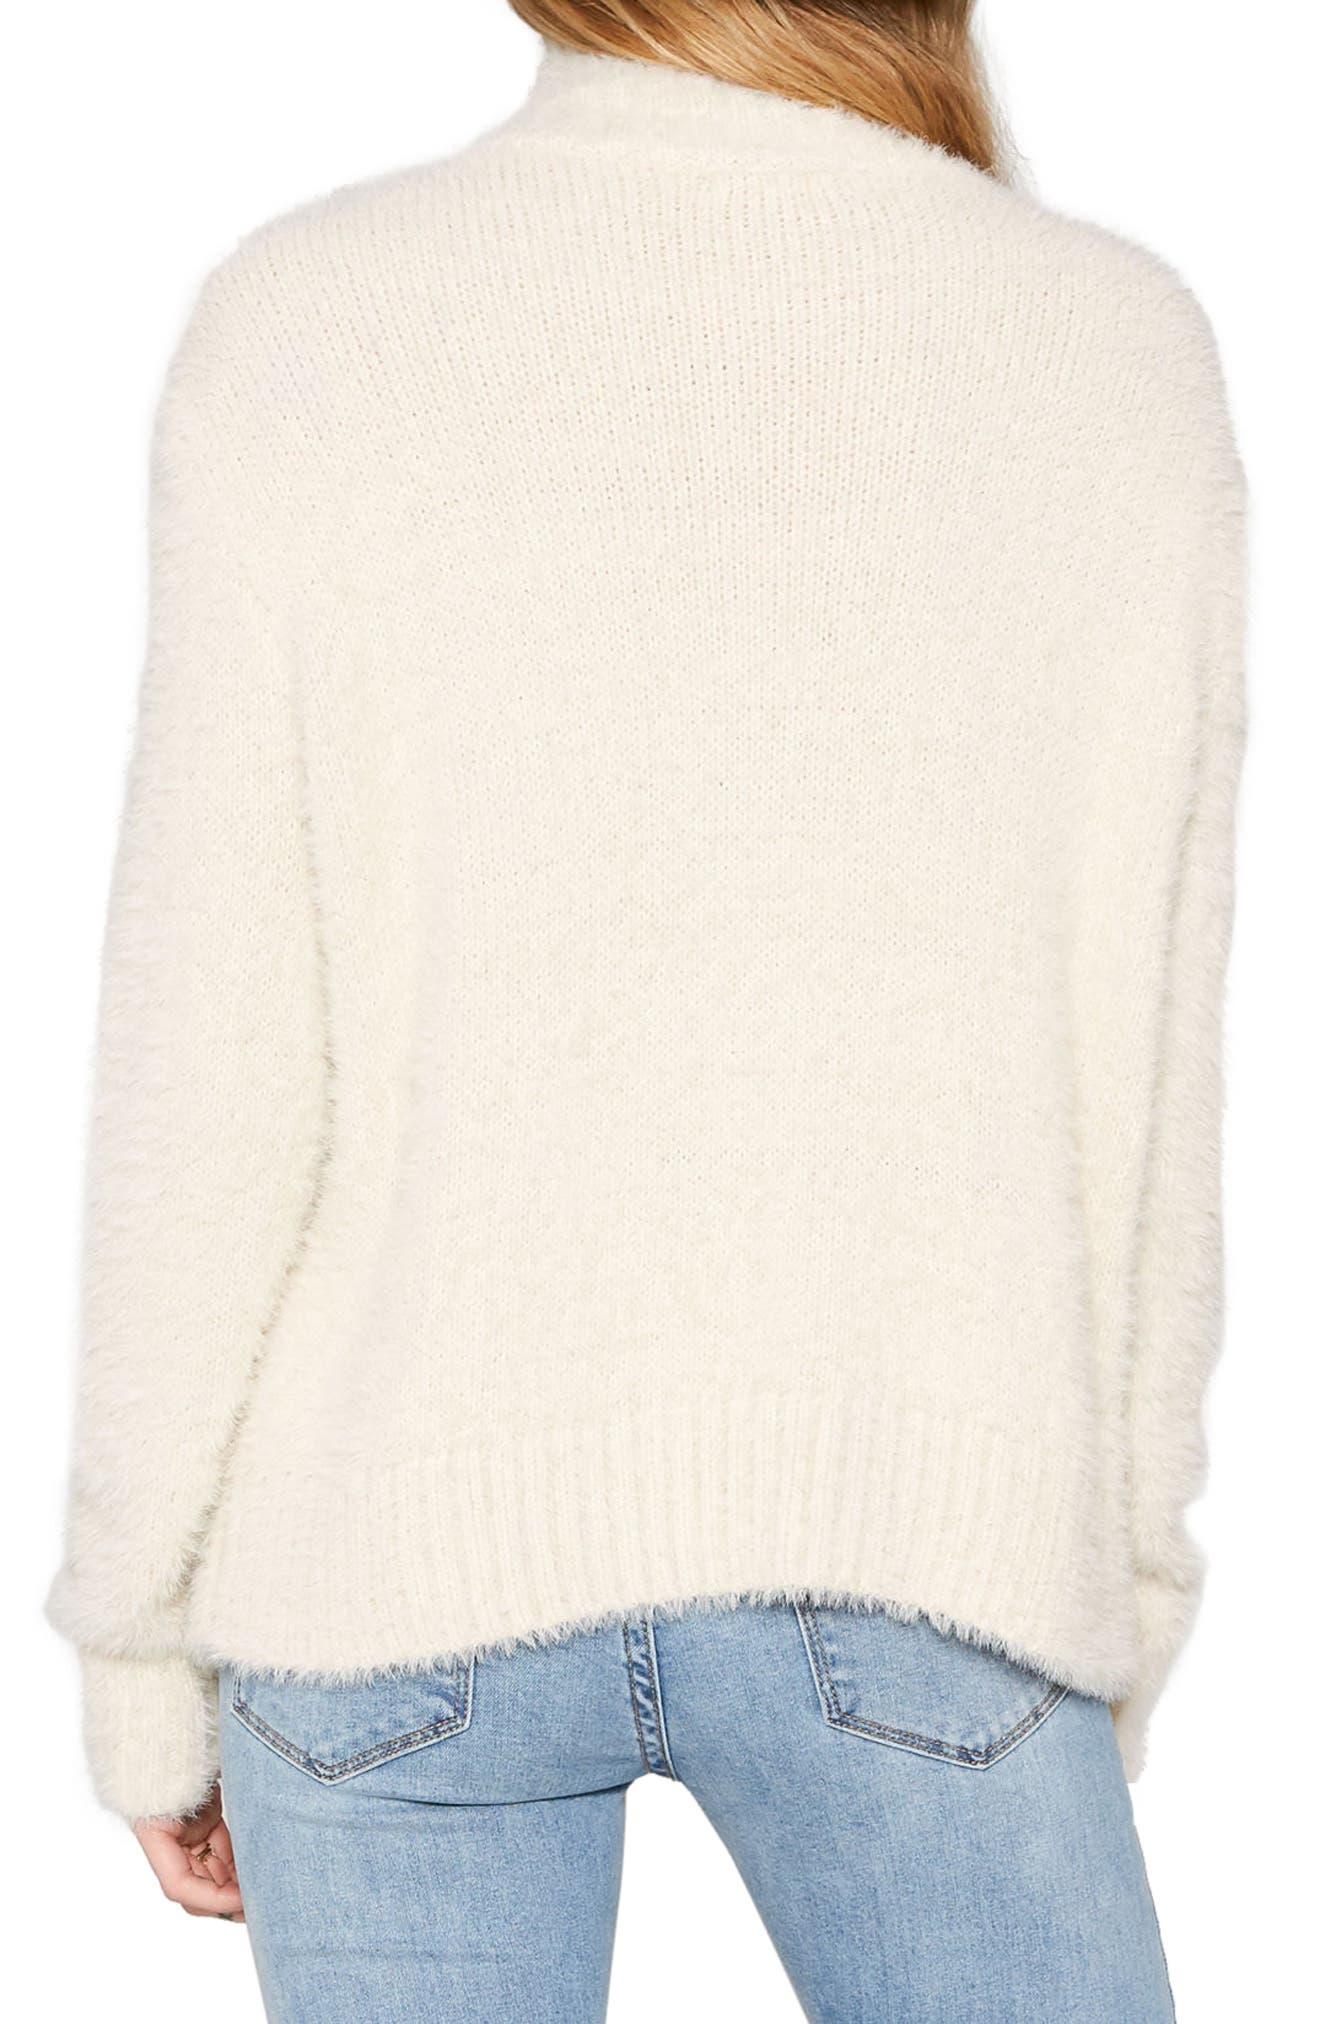 Cool Winds Cable Knit Sweater,                             Alternate thumbnail 4, color,